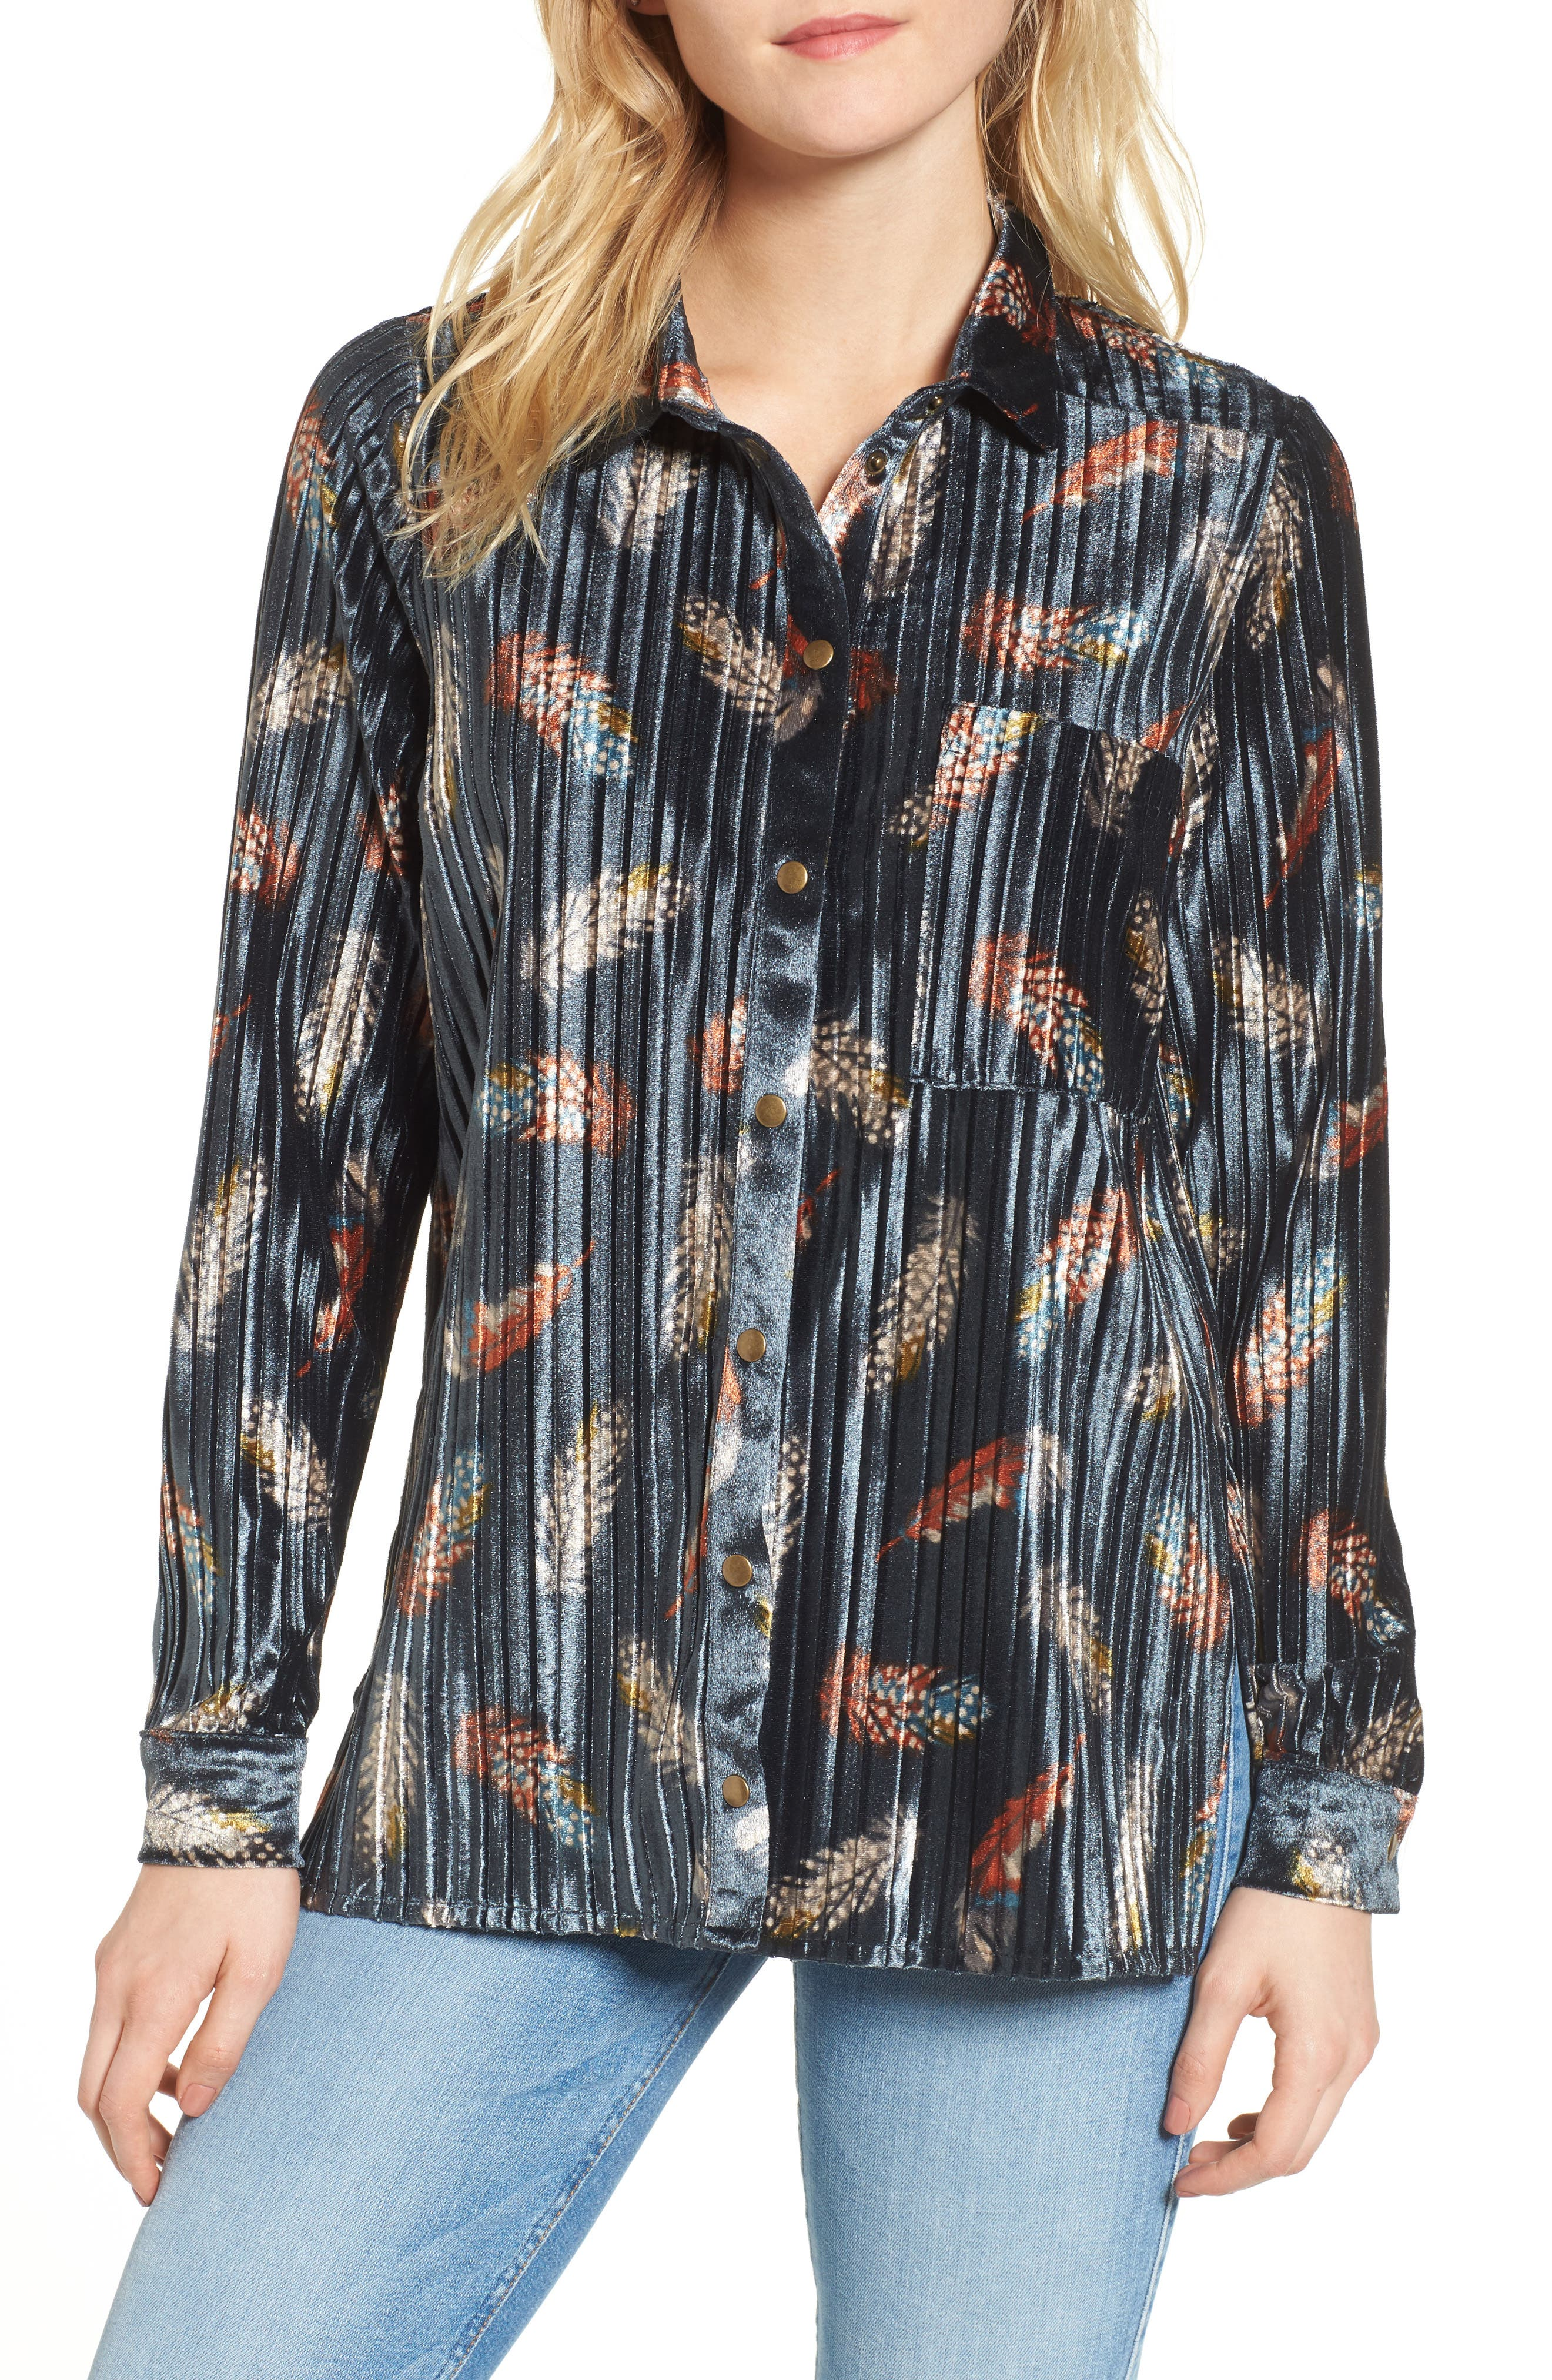 Bishop + Young Pleated Velvet Blouse,                             Main thumbnail 1, color,                             Print